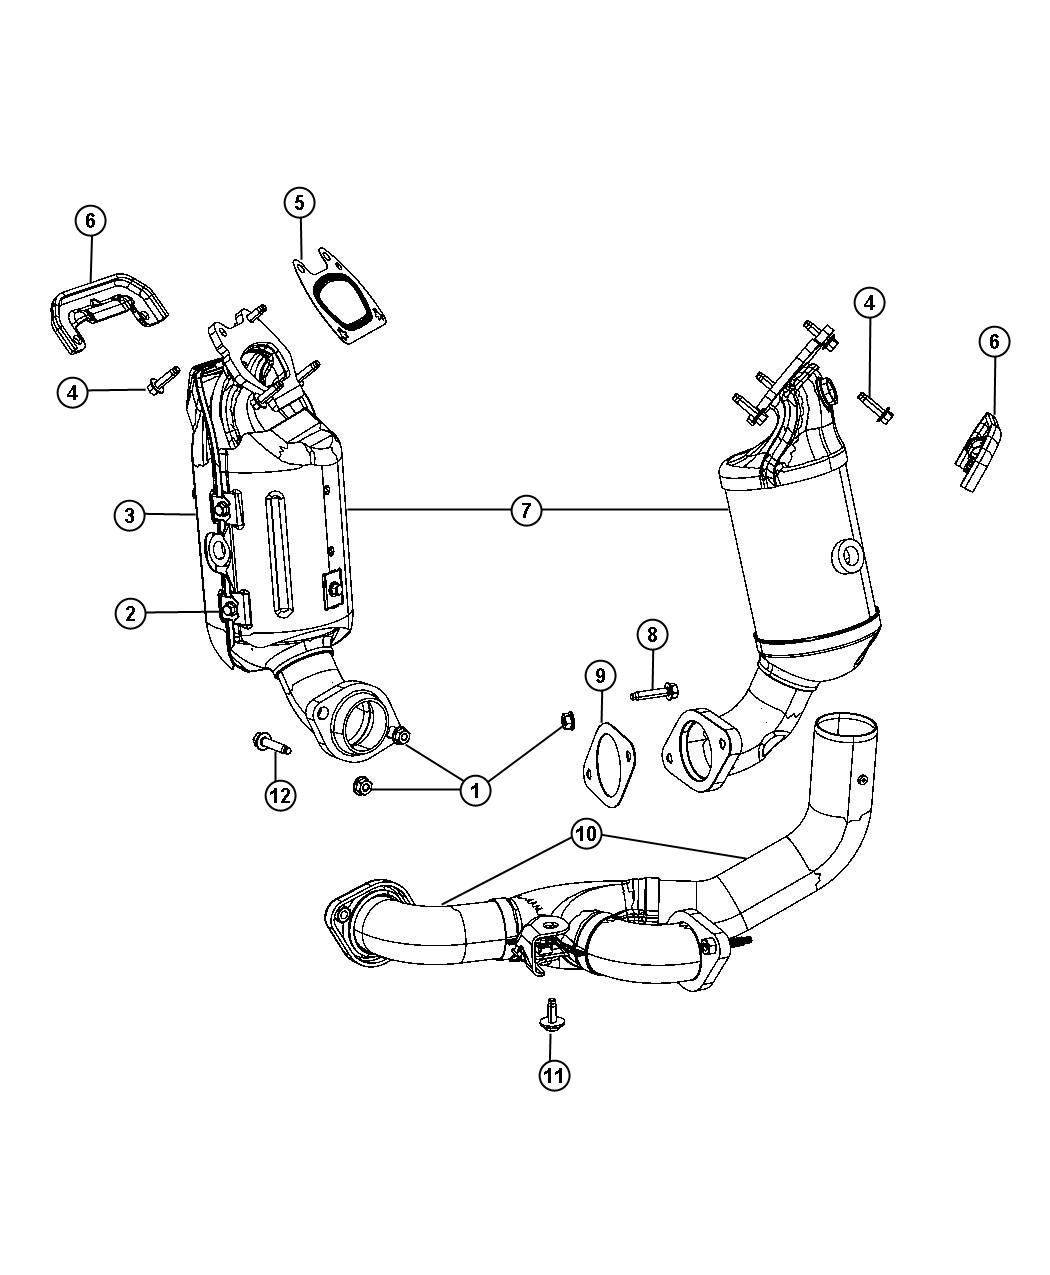 2014 Chrysler Manifold. Used for: exhaust and catalytic